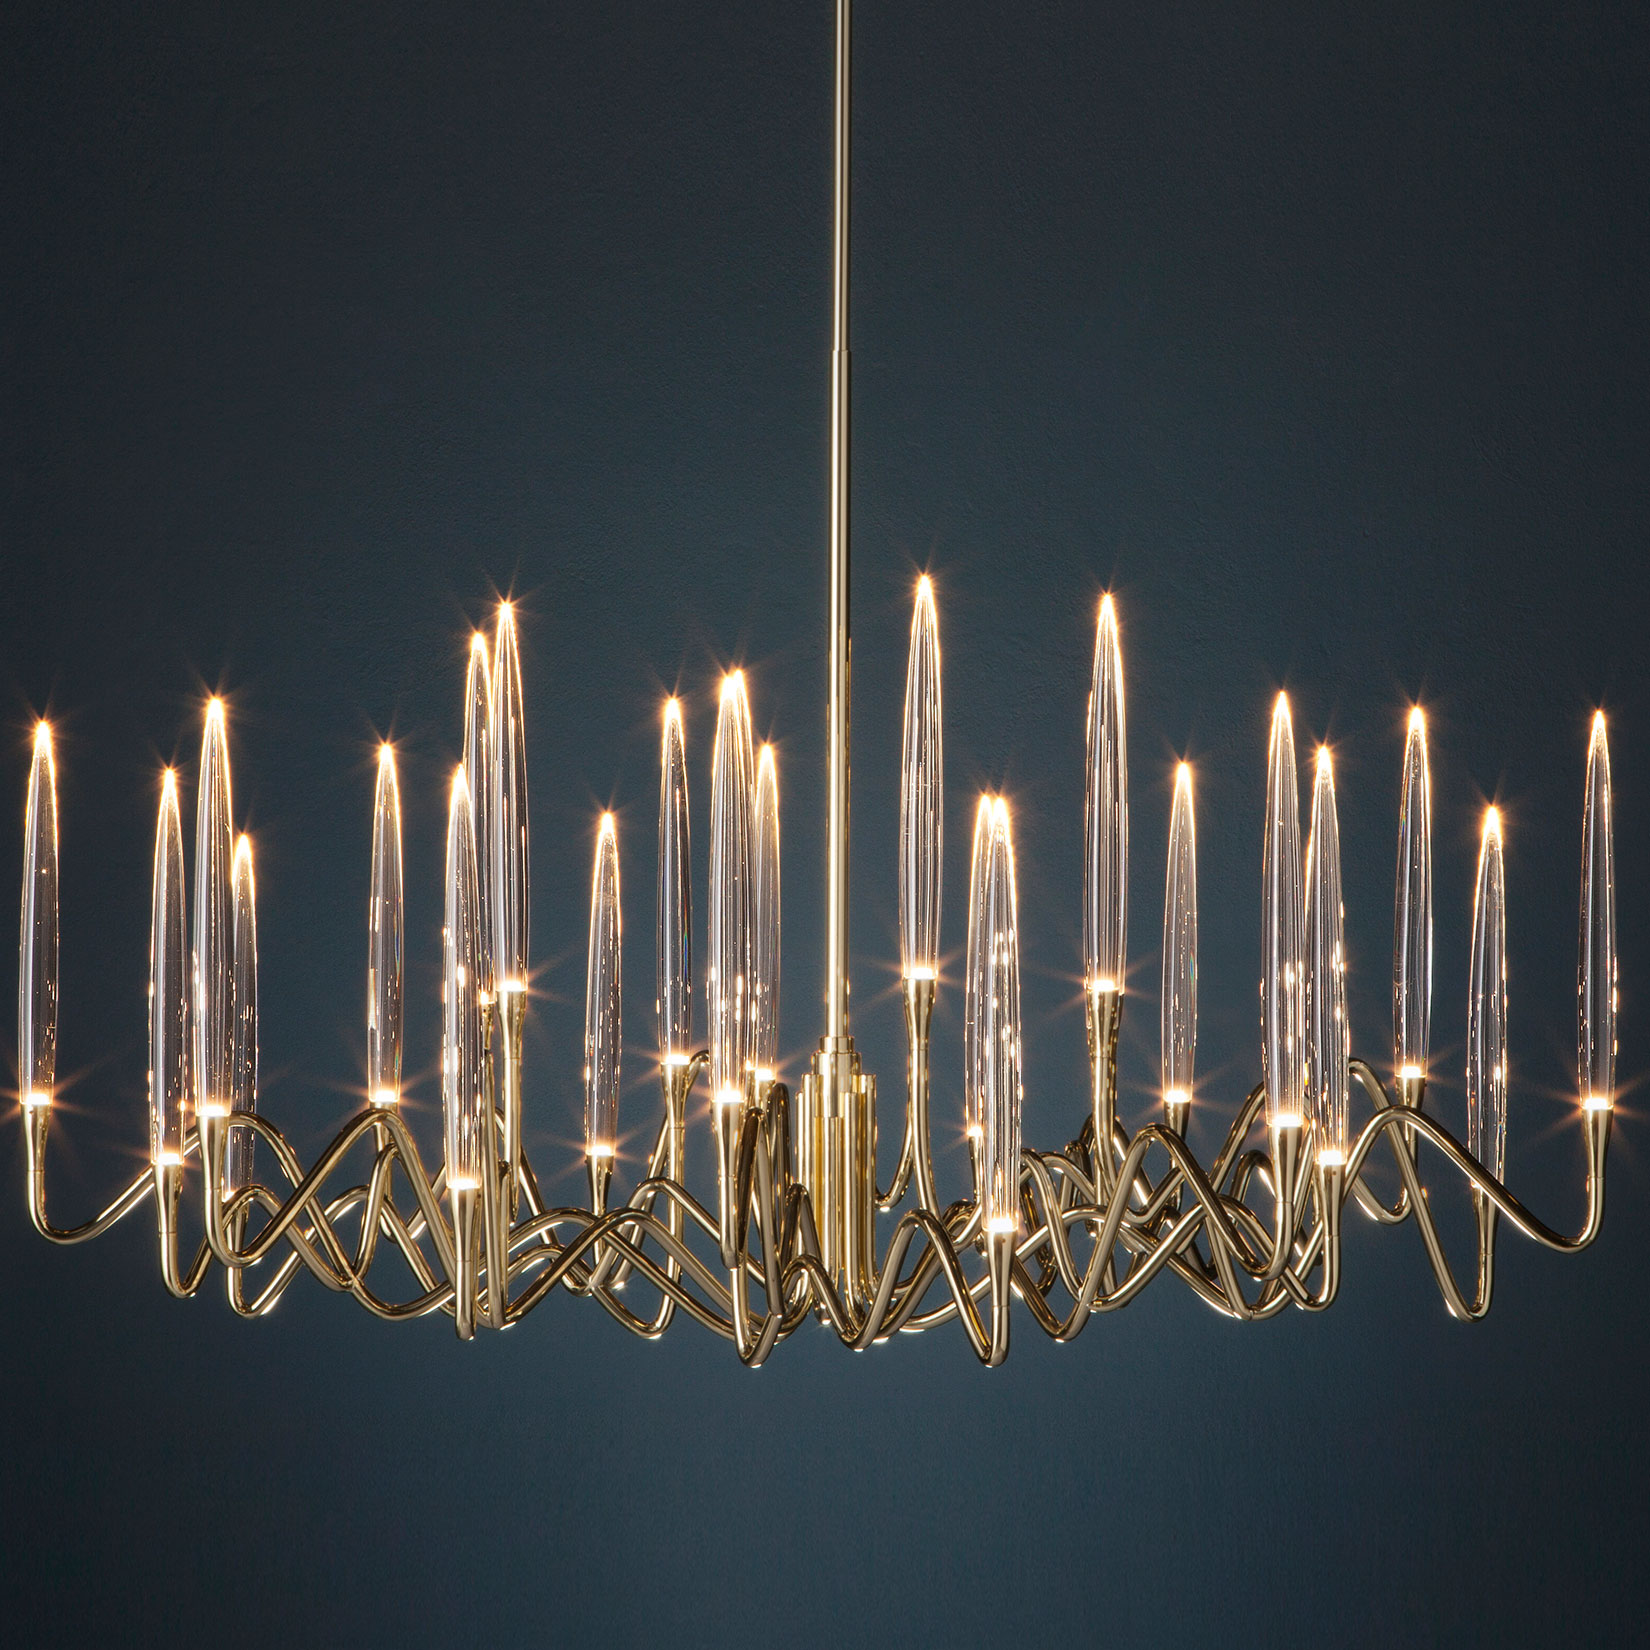 bulb ingenuity style chandelier edison antique top co bulbs fab old filament lamp light